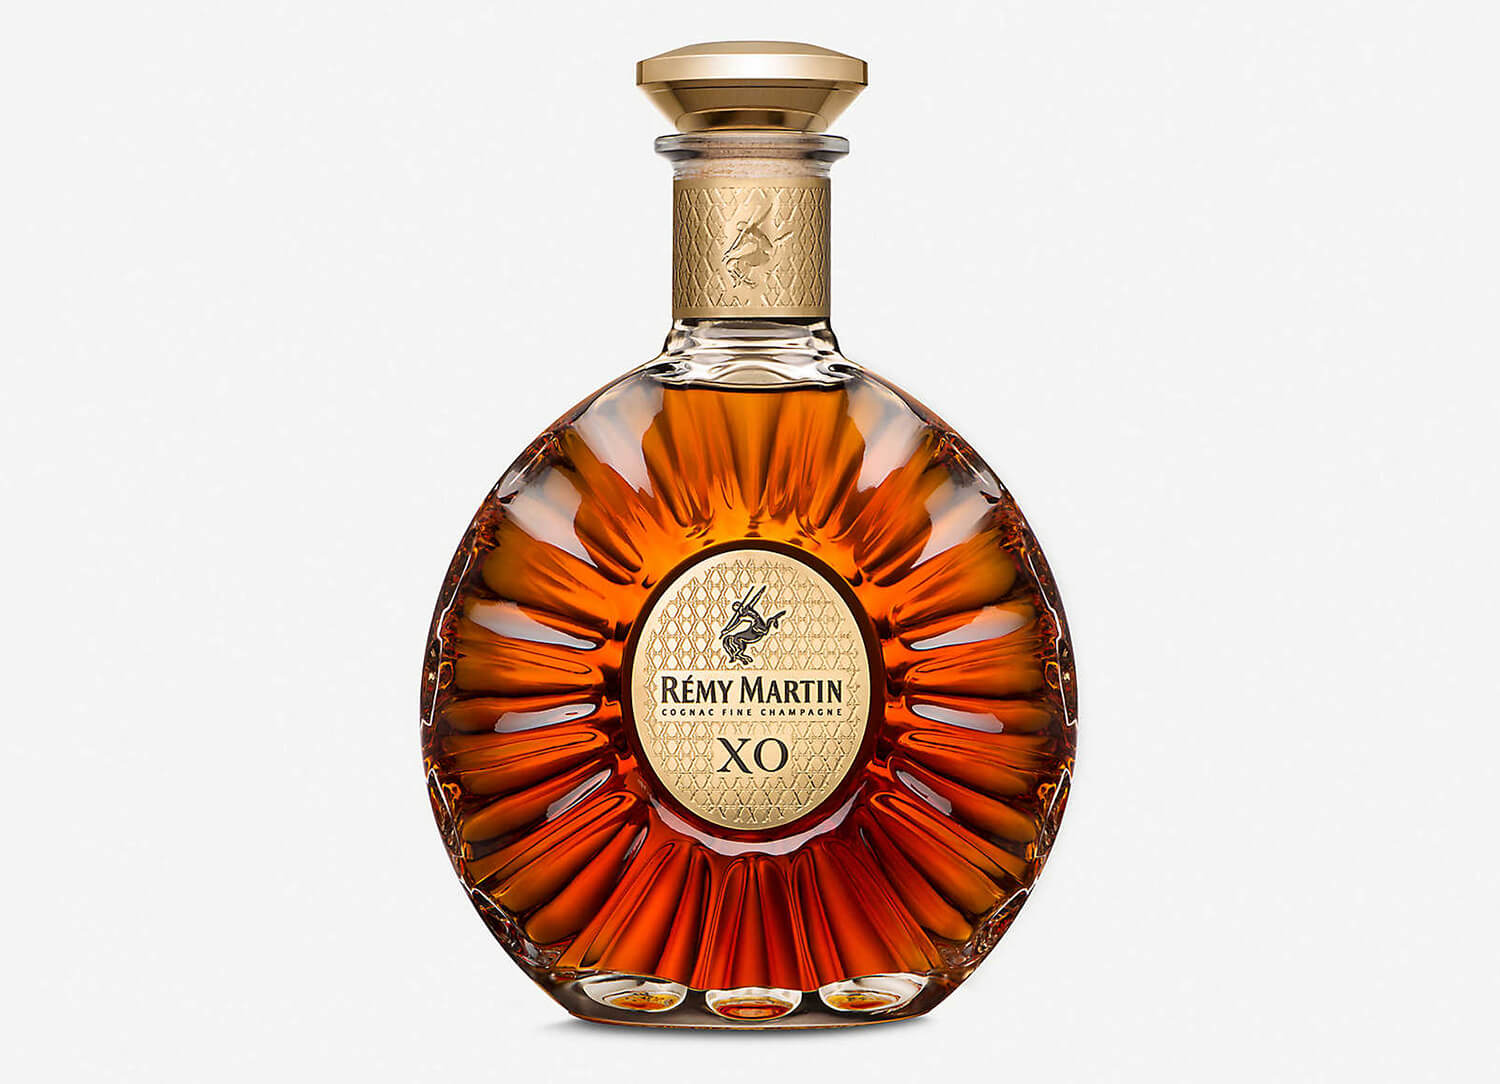 Remy Martin Steaven Richard Limited Edition